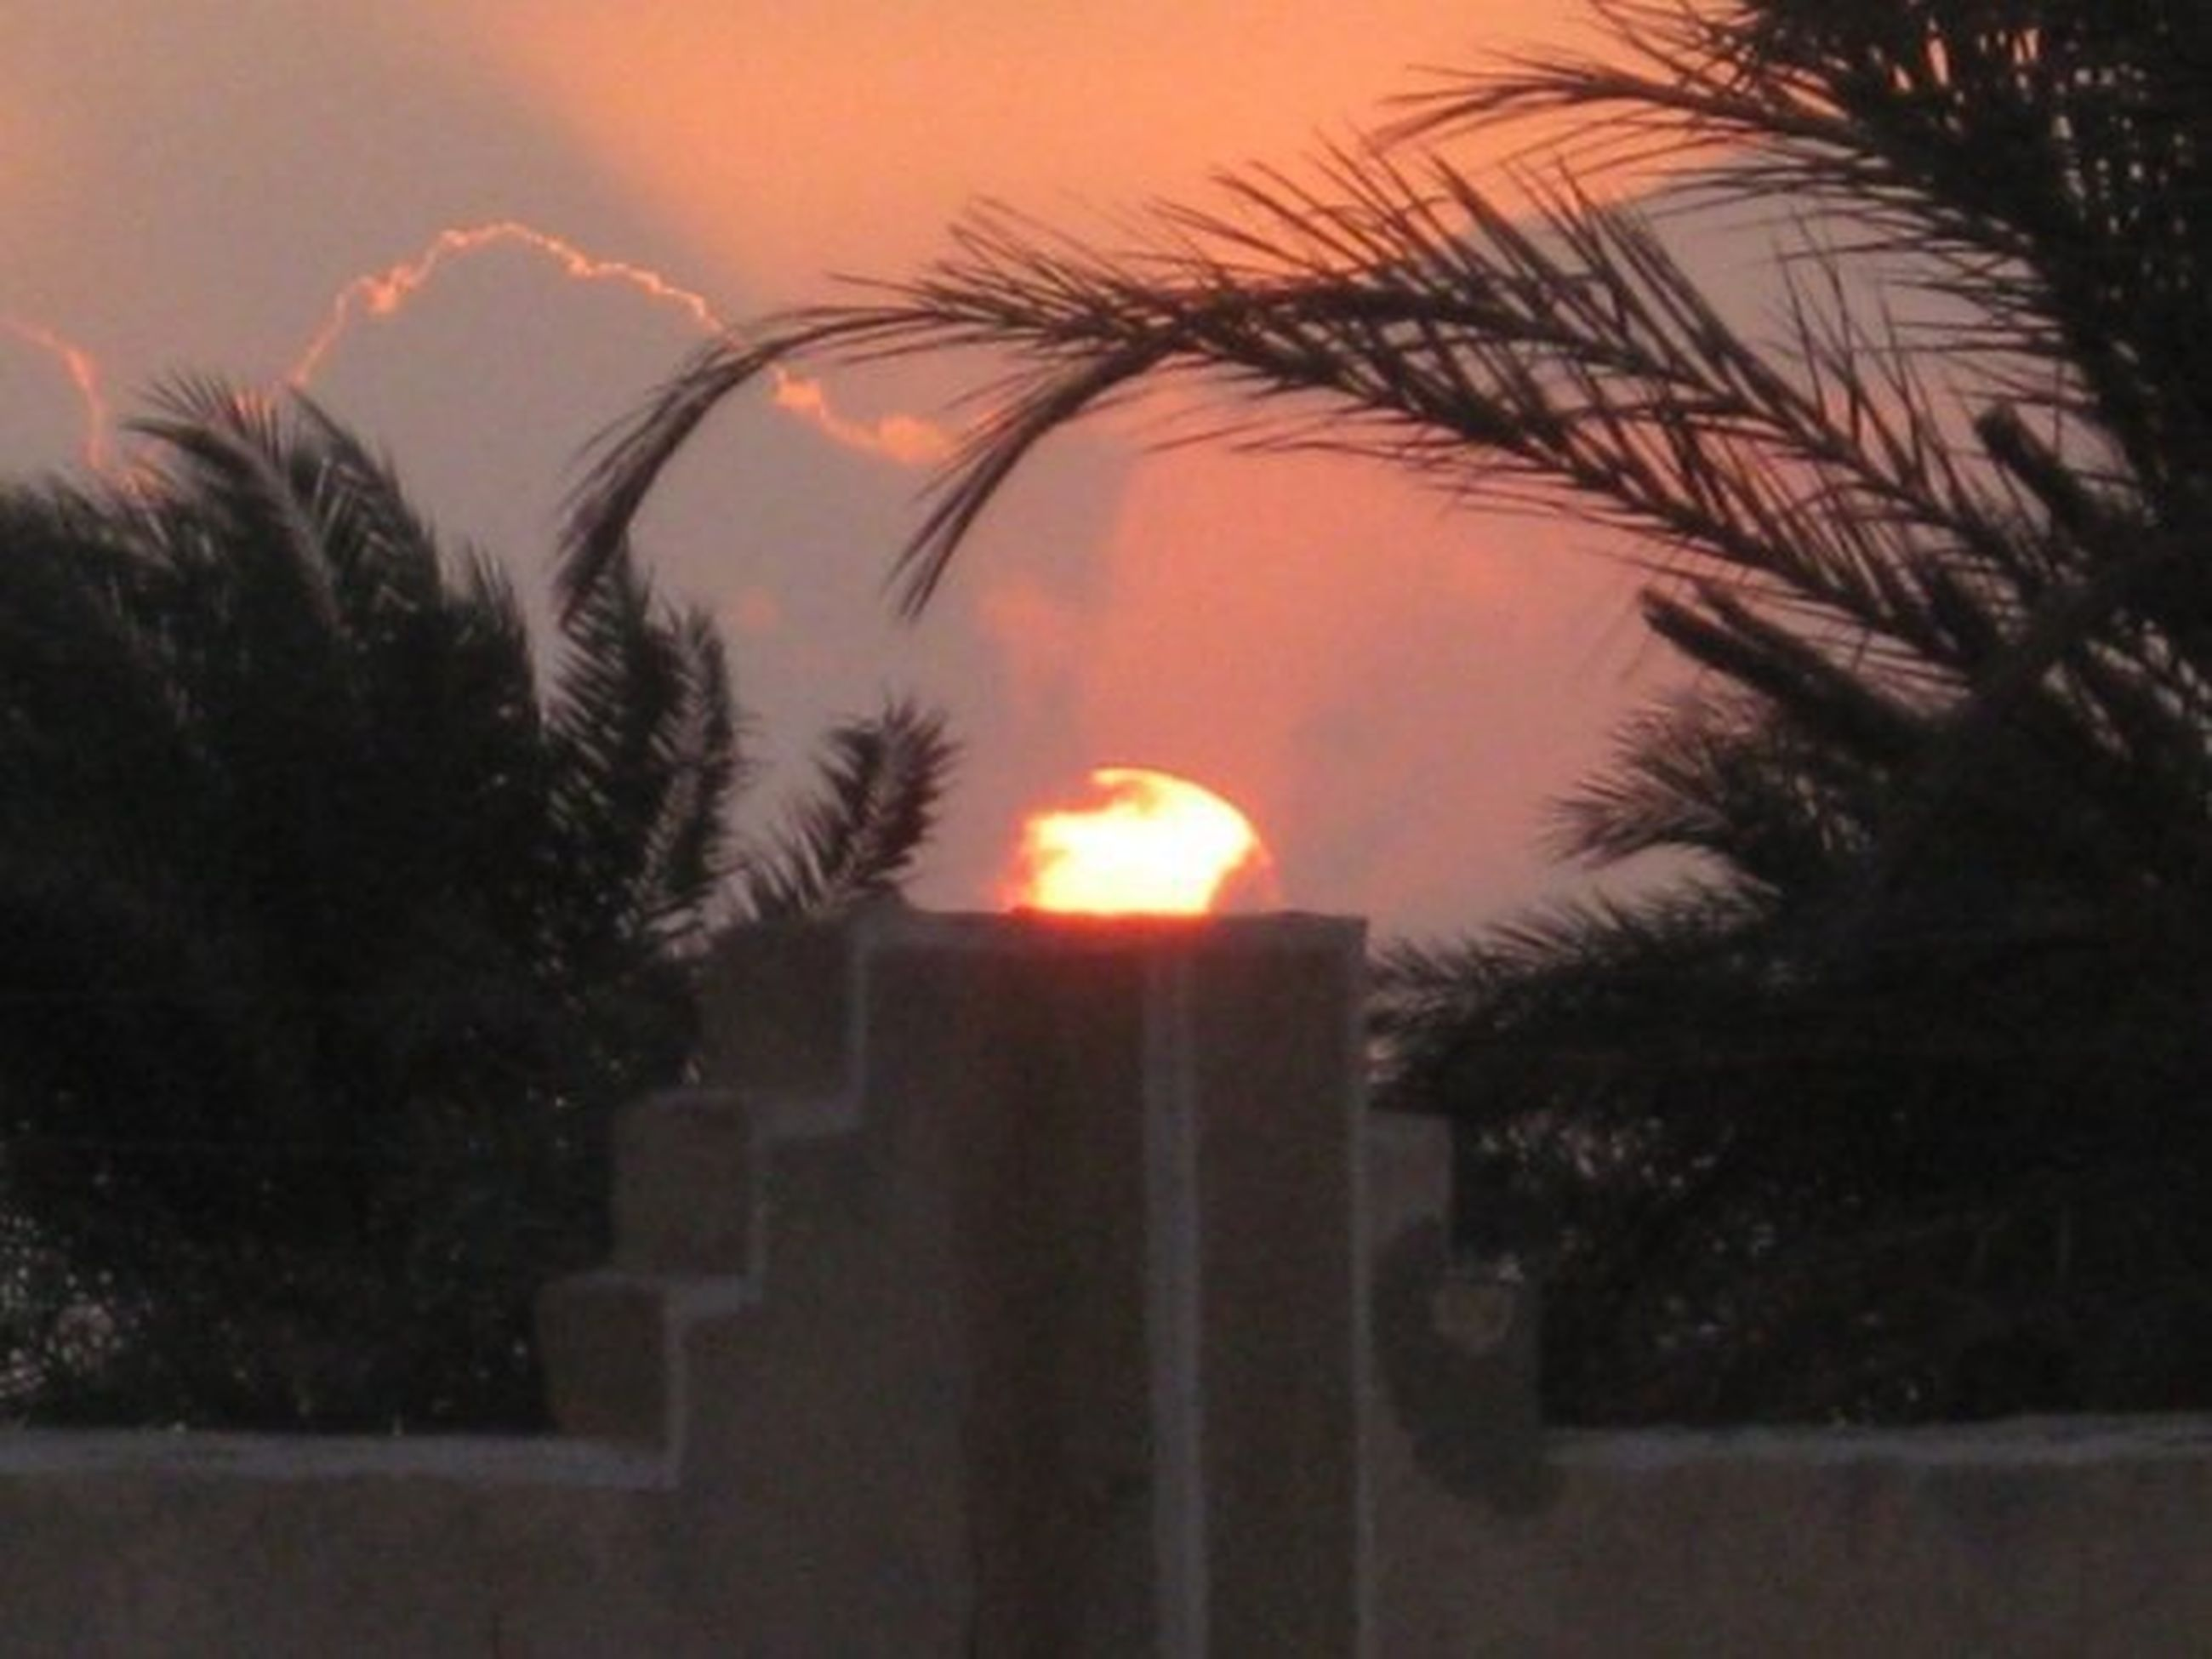 plant, tree, nature, no people, illuminated, sunset, palm tree, burning, sky, dusk, fire, candle, architecture, flame, tropical climate, outdoors, heat - temperature, night, building exterior, tranquility, palm leaf